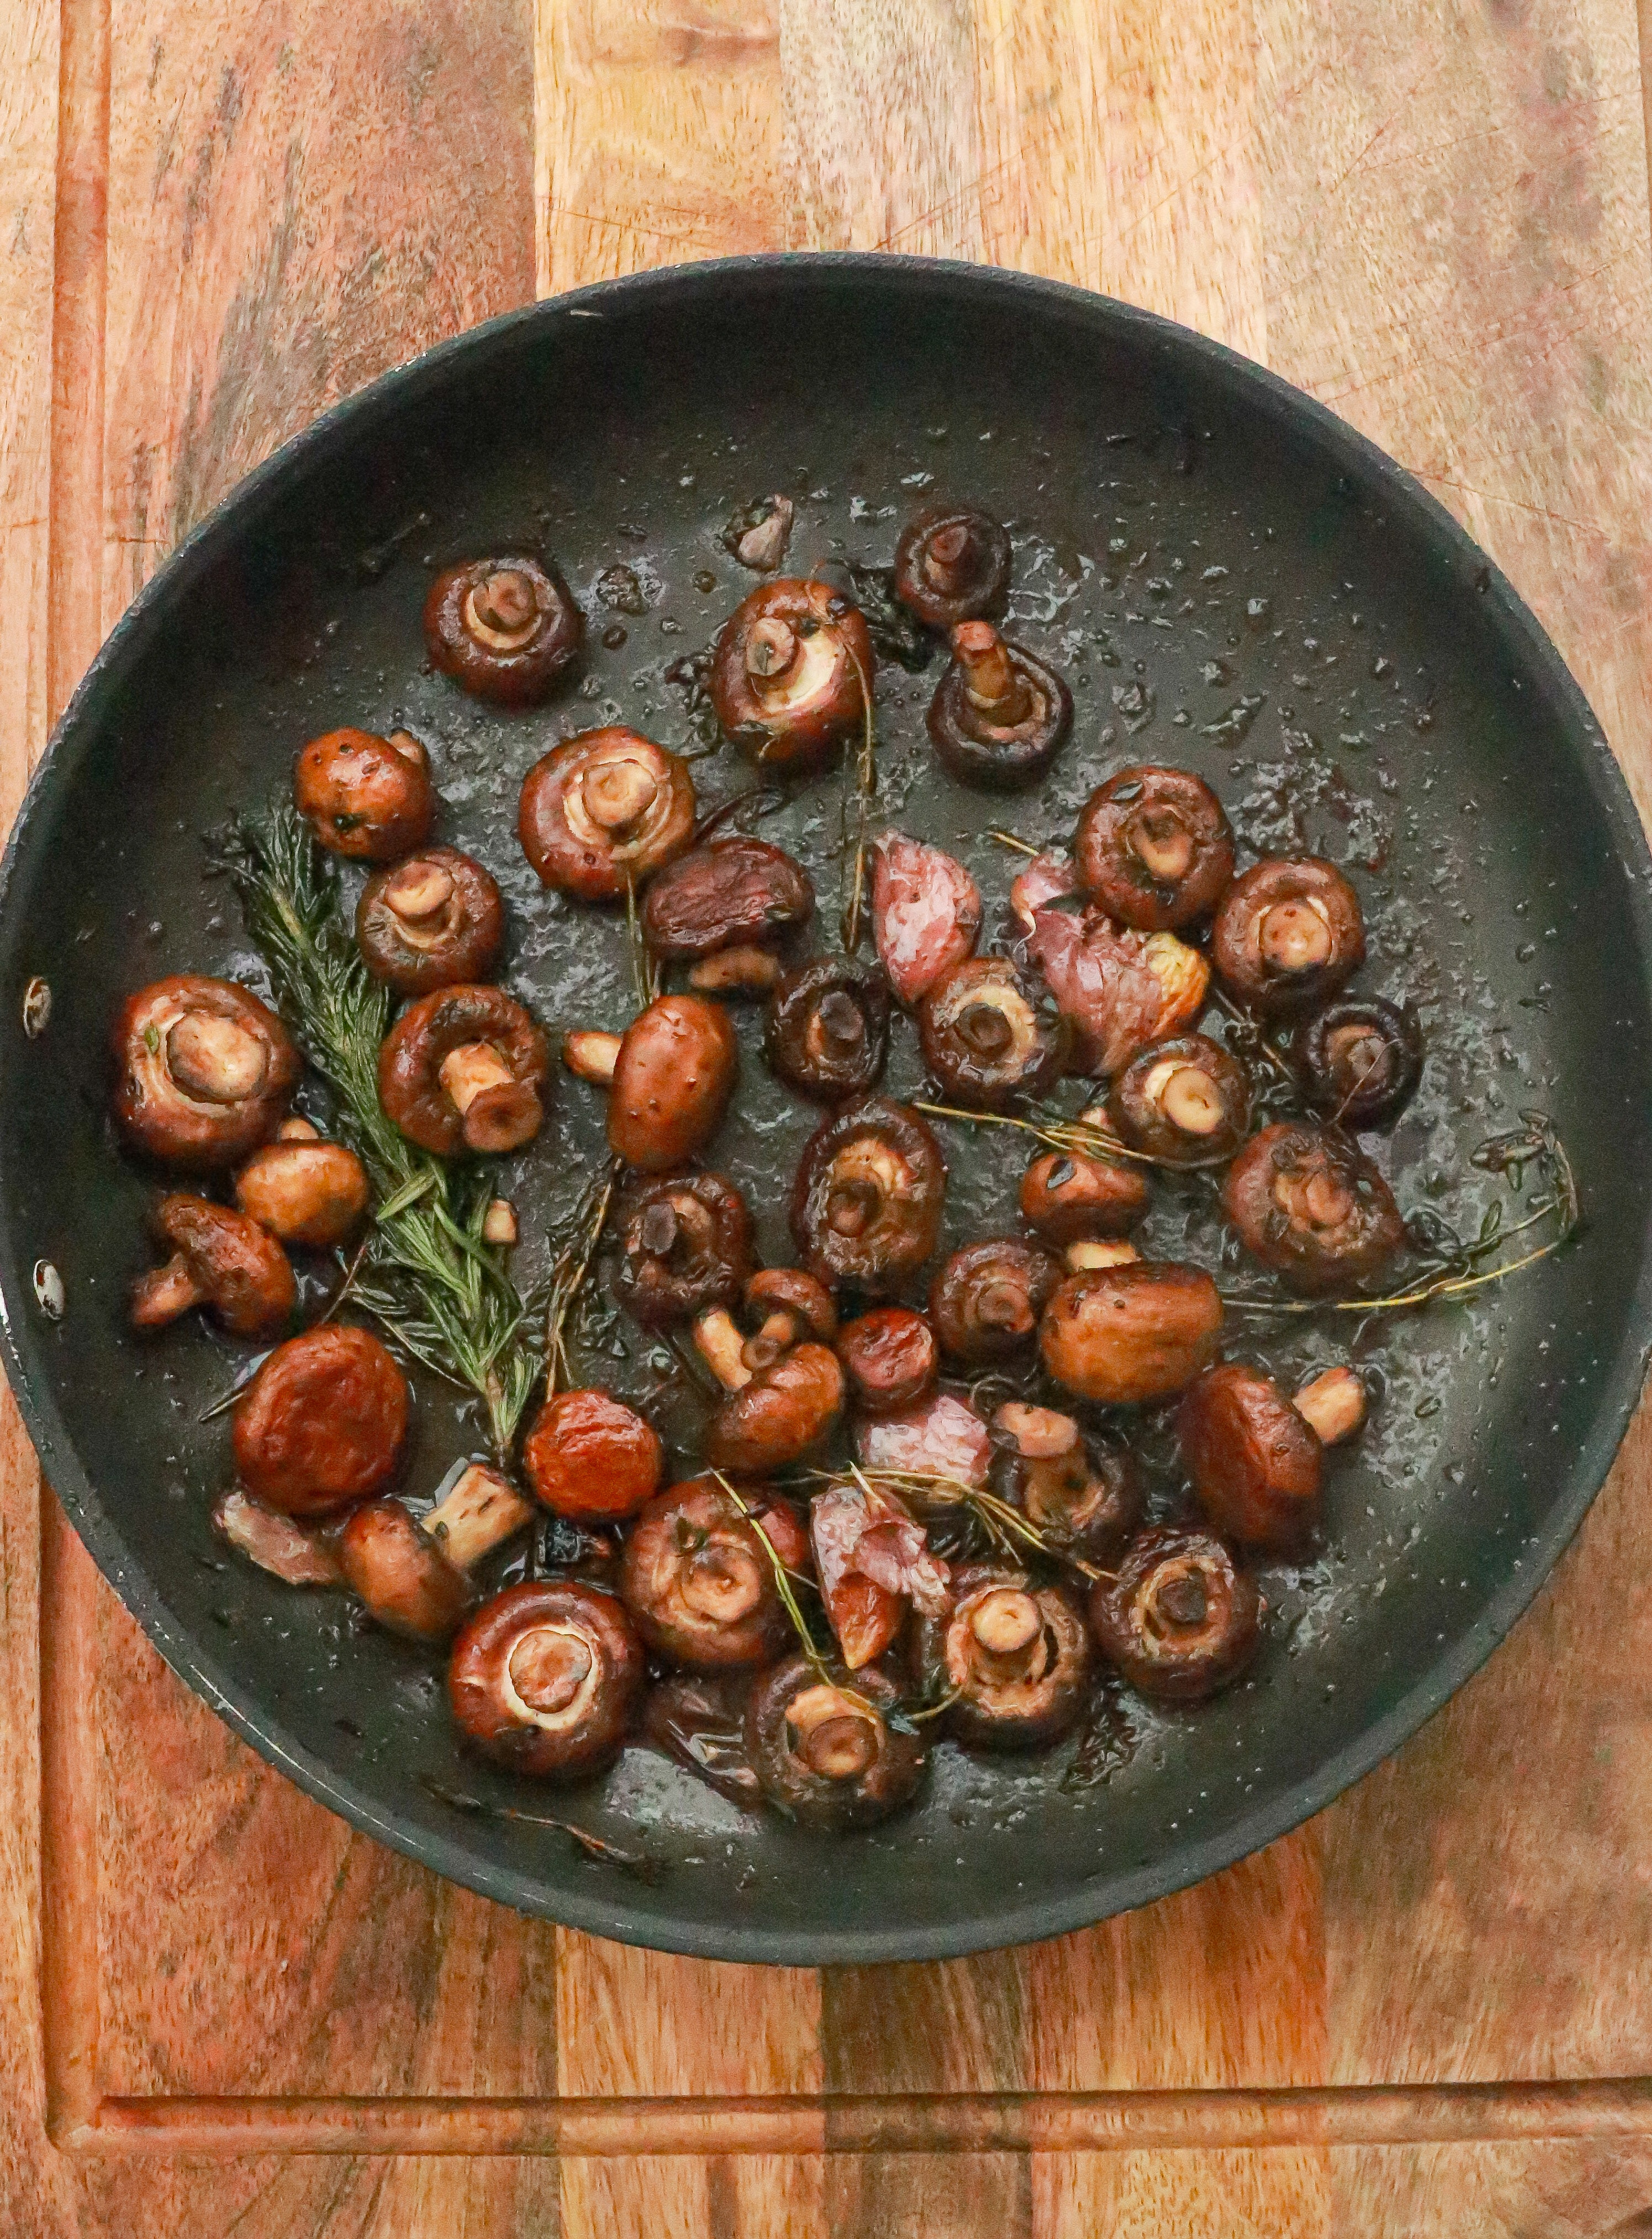 Cook mushrooms without oil to reduce fat intake.